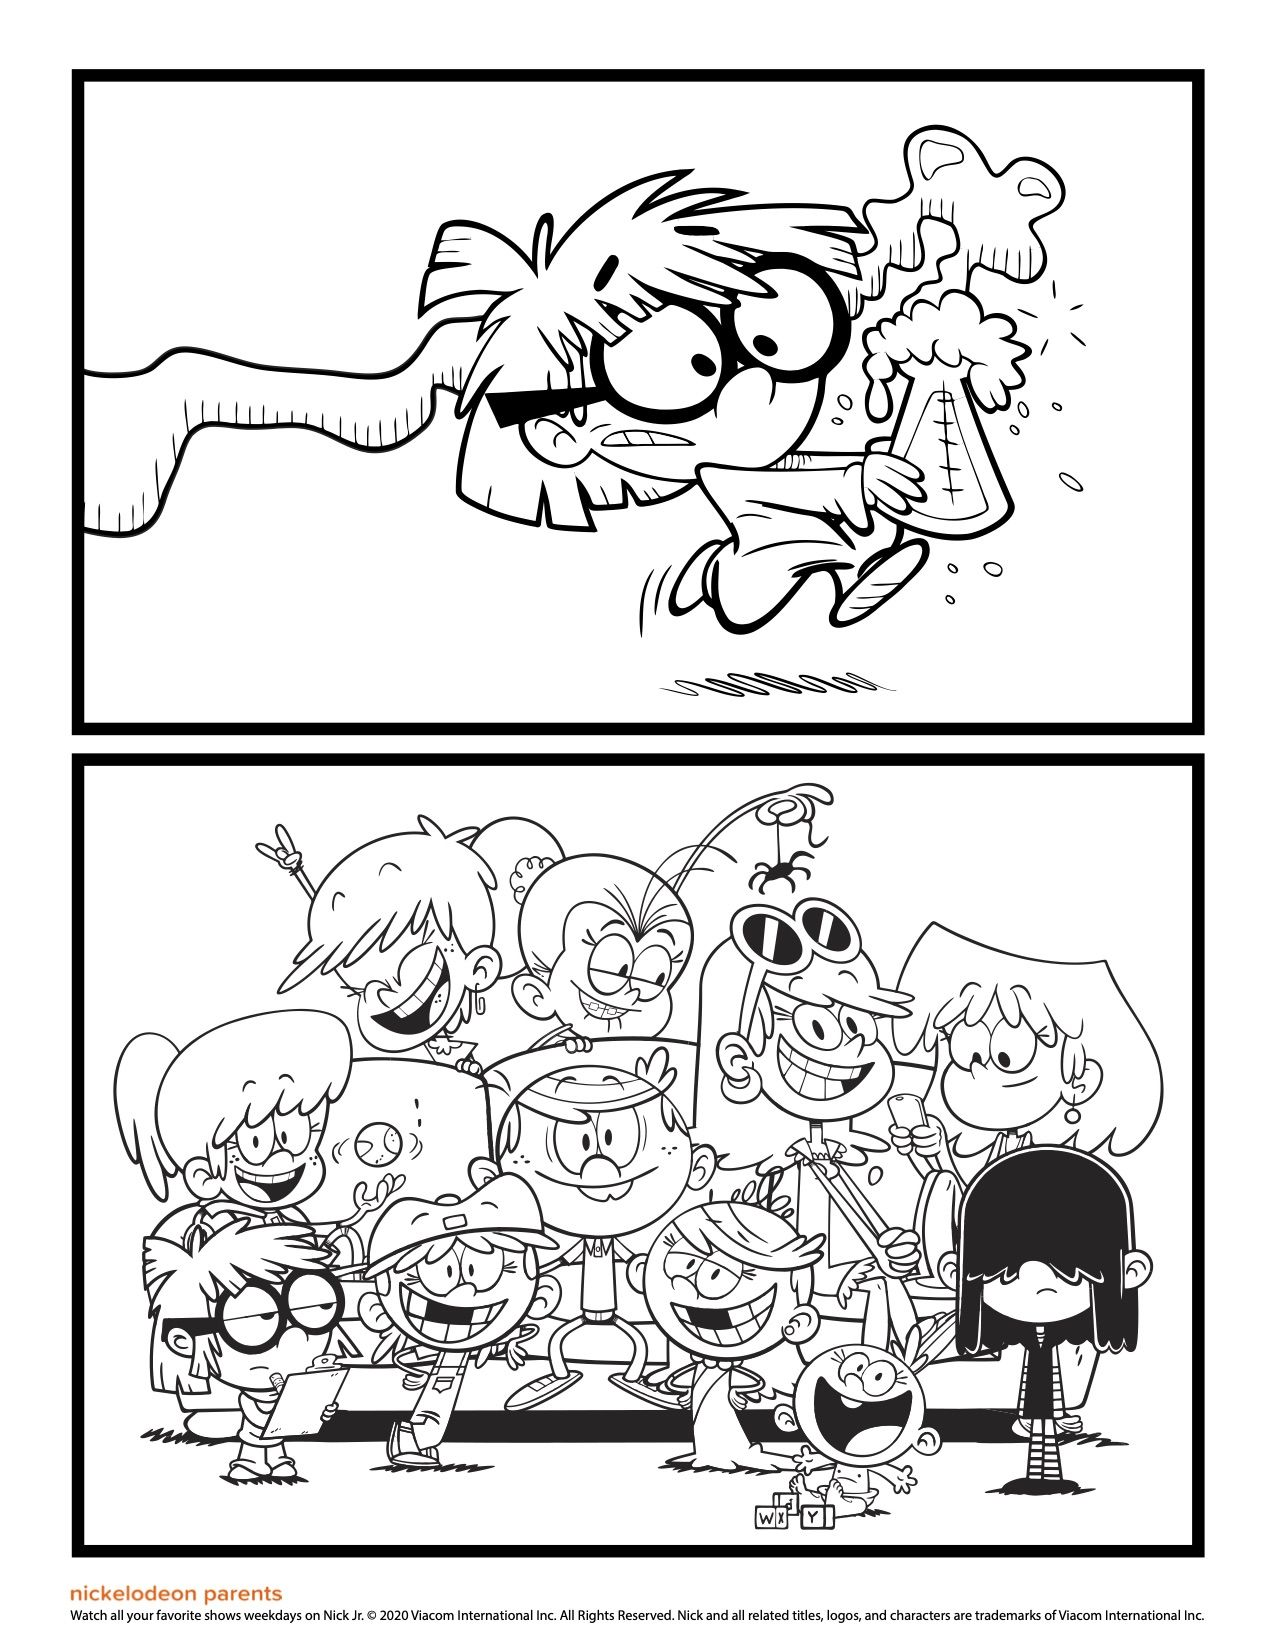 Coloring Book The Loud House Coloring Pages With Mom And Kids Drawings Luna From For Preschoolers 34 Tr House Colouring Pages Coloring Books Drawing For Kids